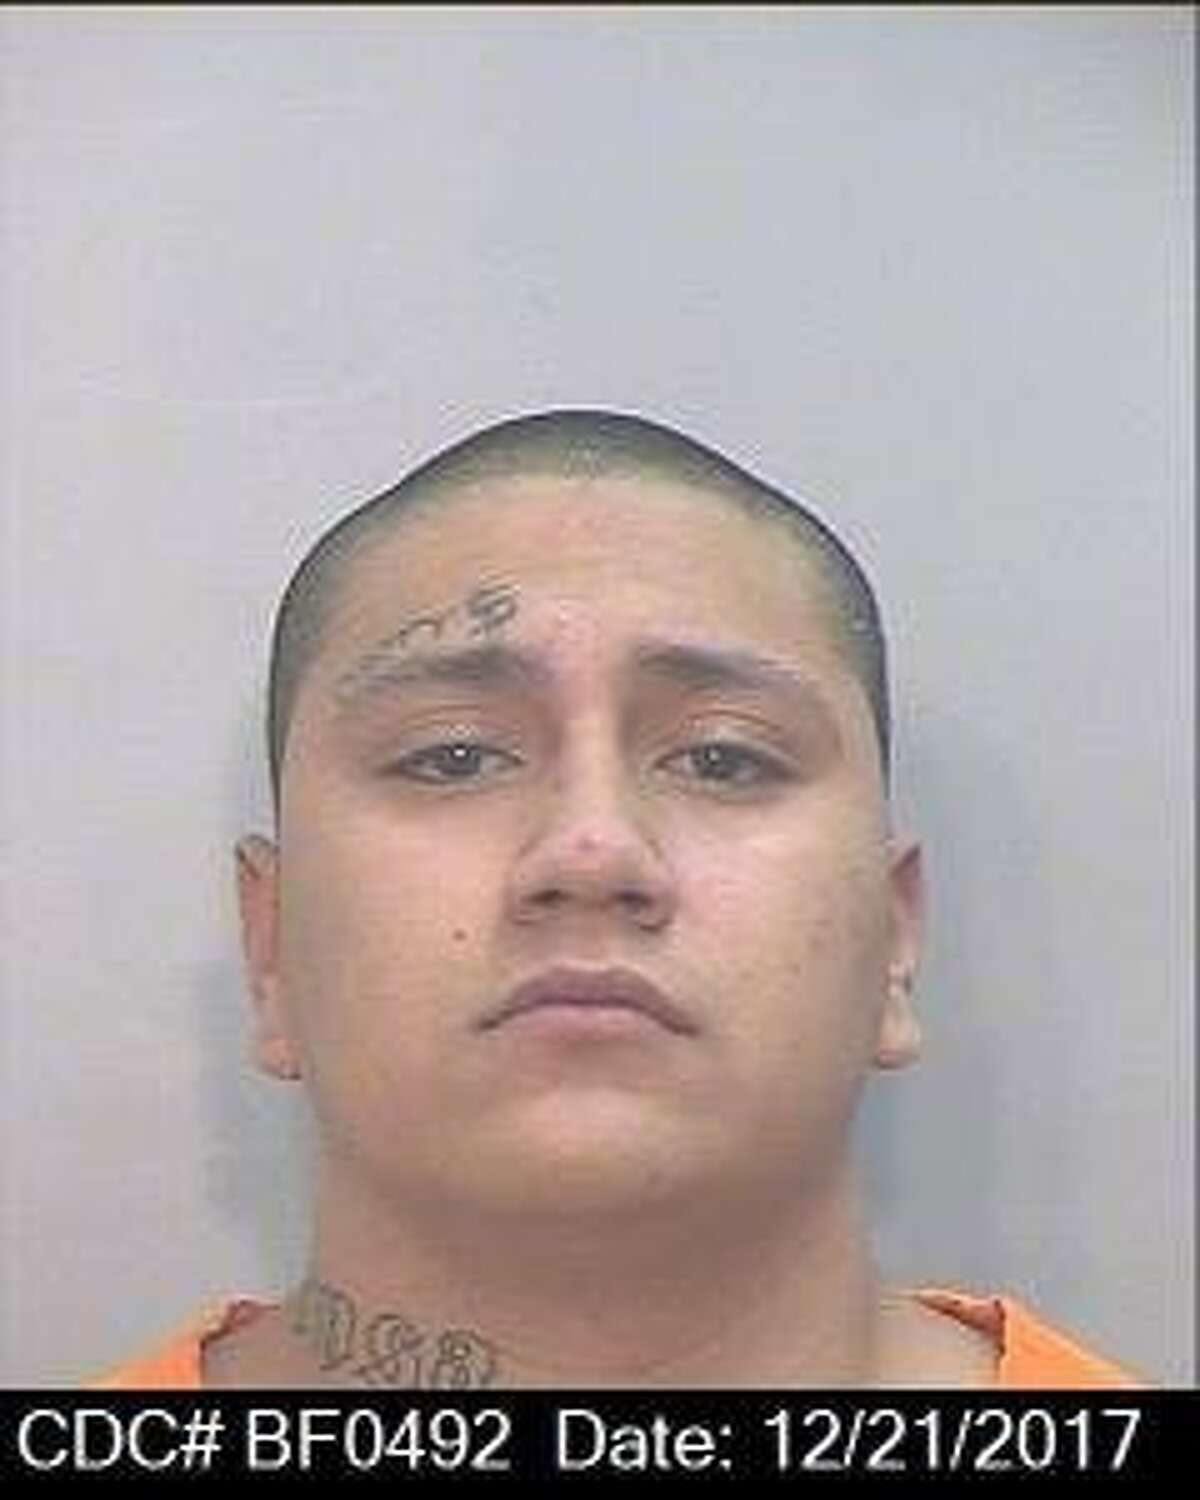 San Quentin State Prison officials said inmate Shalom Mendoza, 21, escaped from the facility on Wednesday night, prompting a manhunt.